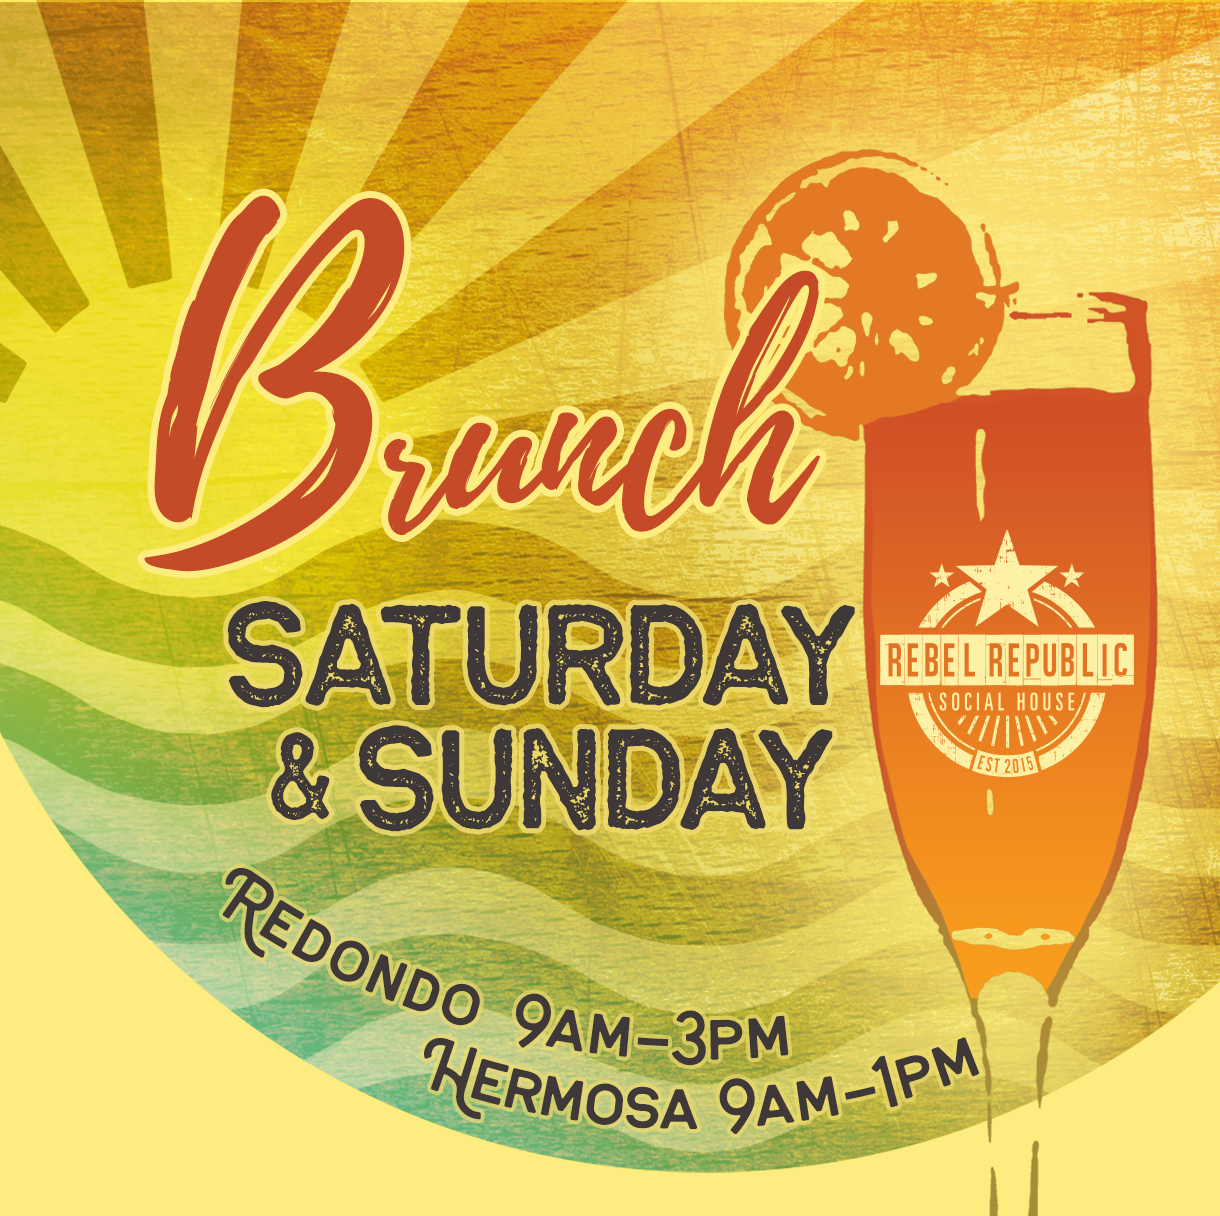 Brunch - SATURDAY & SUNDAYRedondo 9am-3pmHermosa 9am-1pm$15 ENDLESS MIMOSASAvailable with purchase of Brunch Entrée. Cannot be combinedwith other offers. Excludes discounted and promotional itemsSPECIALTY SANGRIASCOLD BREW COCKTAILSBRUNCH SPECIALTIES by Chef Nael